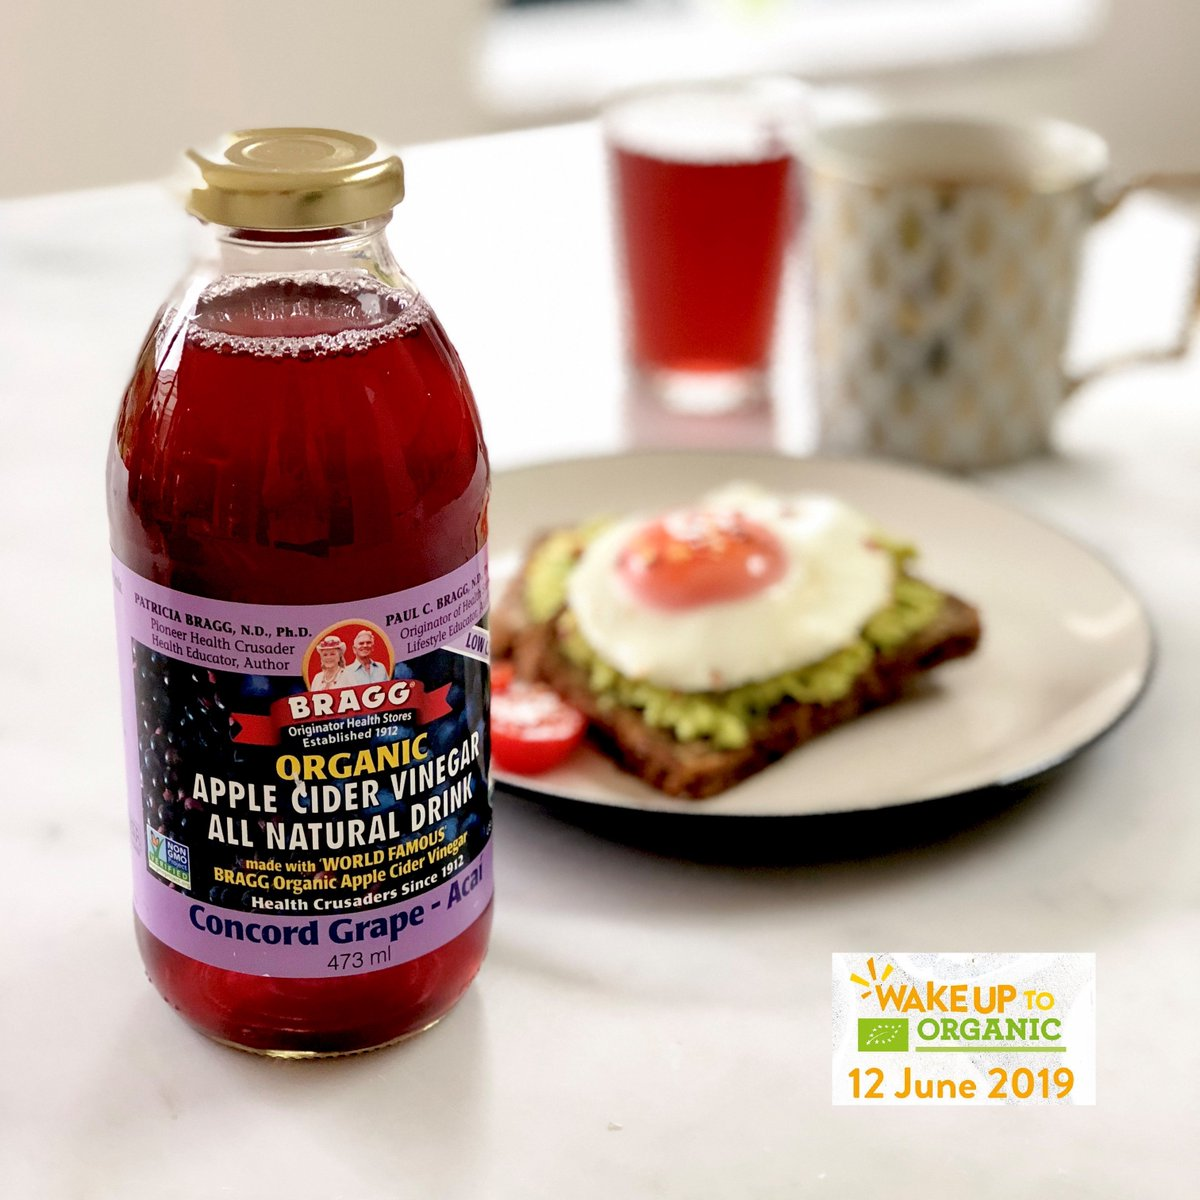 Wake up to Organic! Organic is better for you and the planet - we're loving some apple cider vinegar this morning! No hump day here   #organic #wakeuptoorganic #feedyourhappy #braggacv #breakfast #humpday #healthy<br>http://pic.twitter.com/uyU1W2WSfO